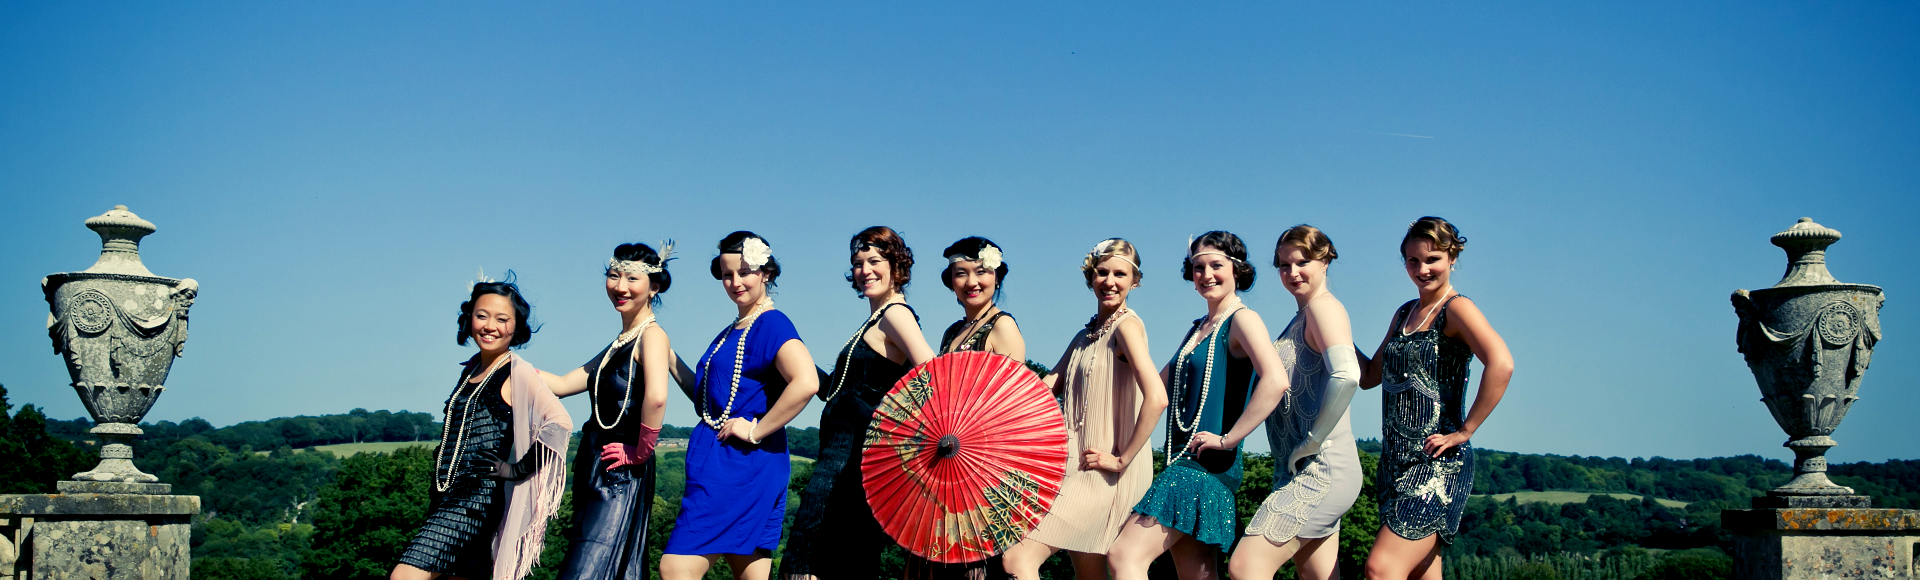 Live life in the jazz age for a day